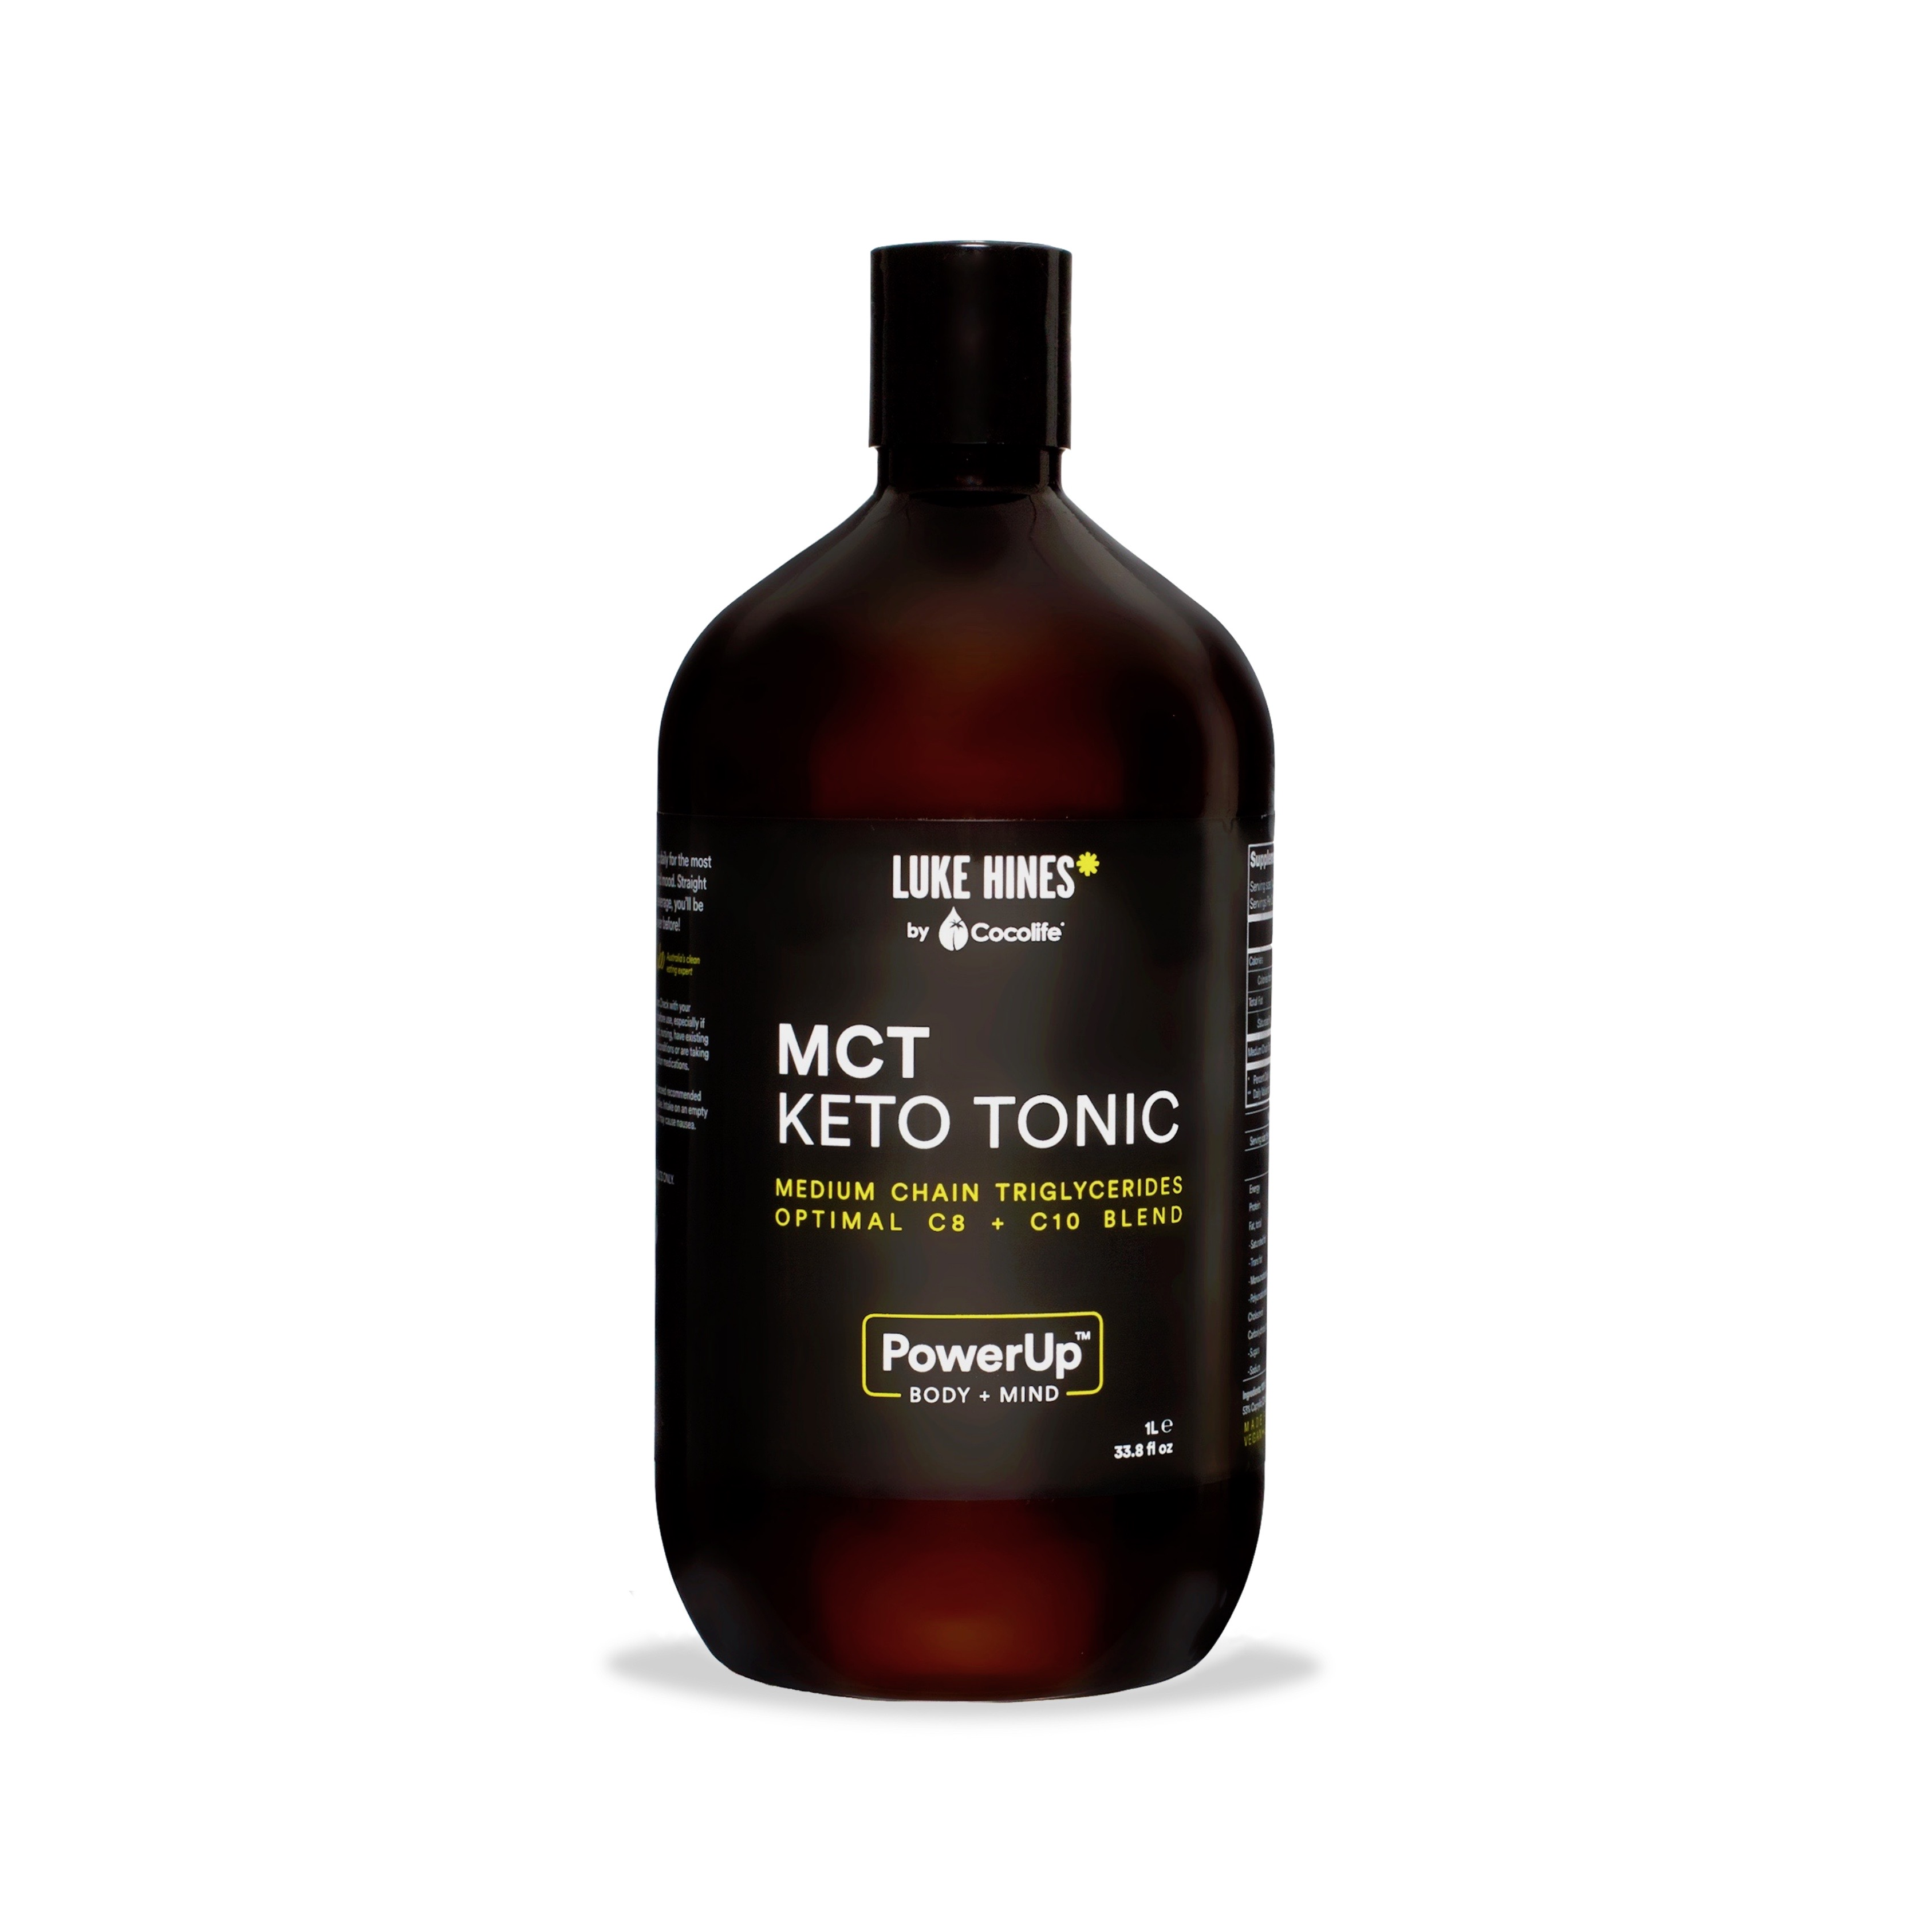 MCT 1 Litre - Luke Hines by Cocolife MCT Keto Tonic